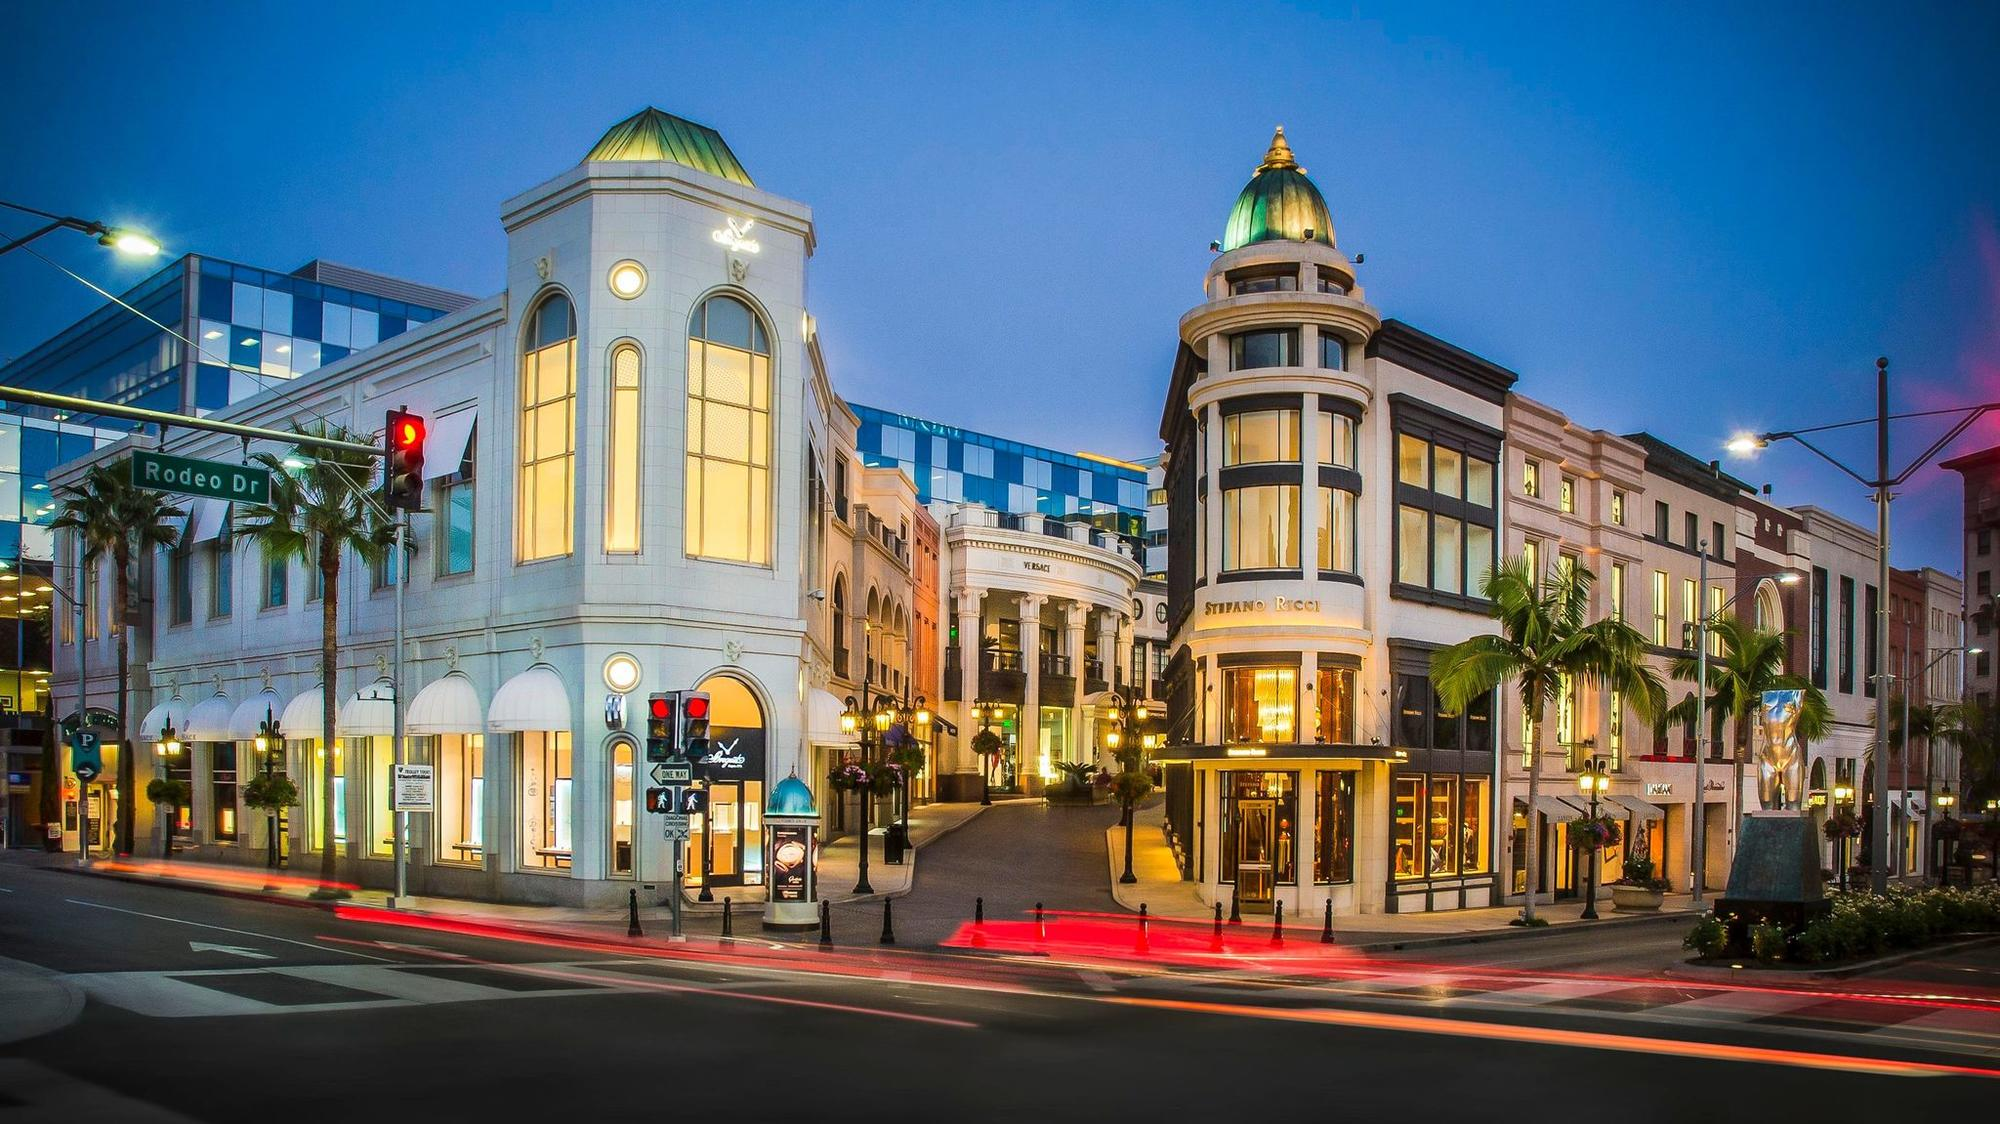 Along Rodeo Drive, boutique managers are mum about client information.